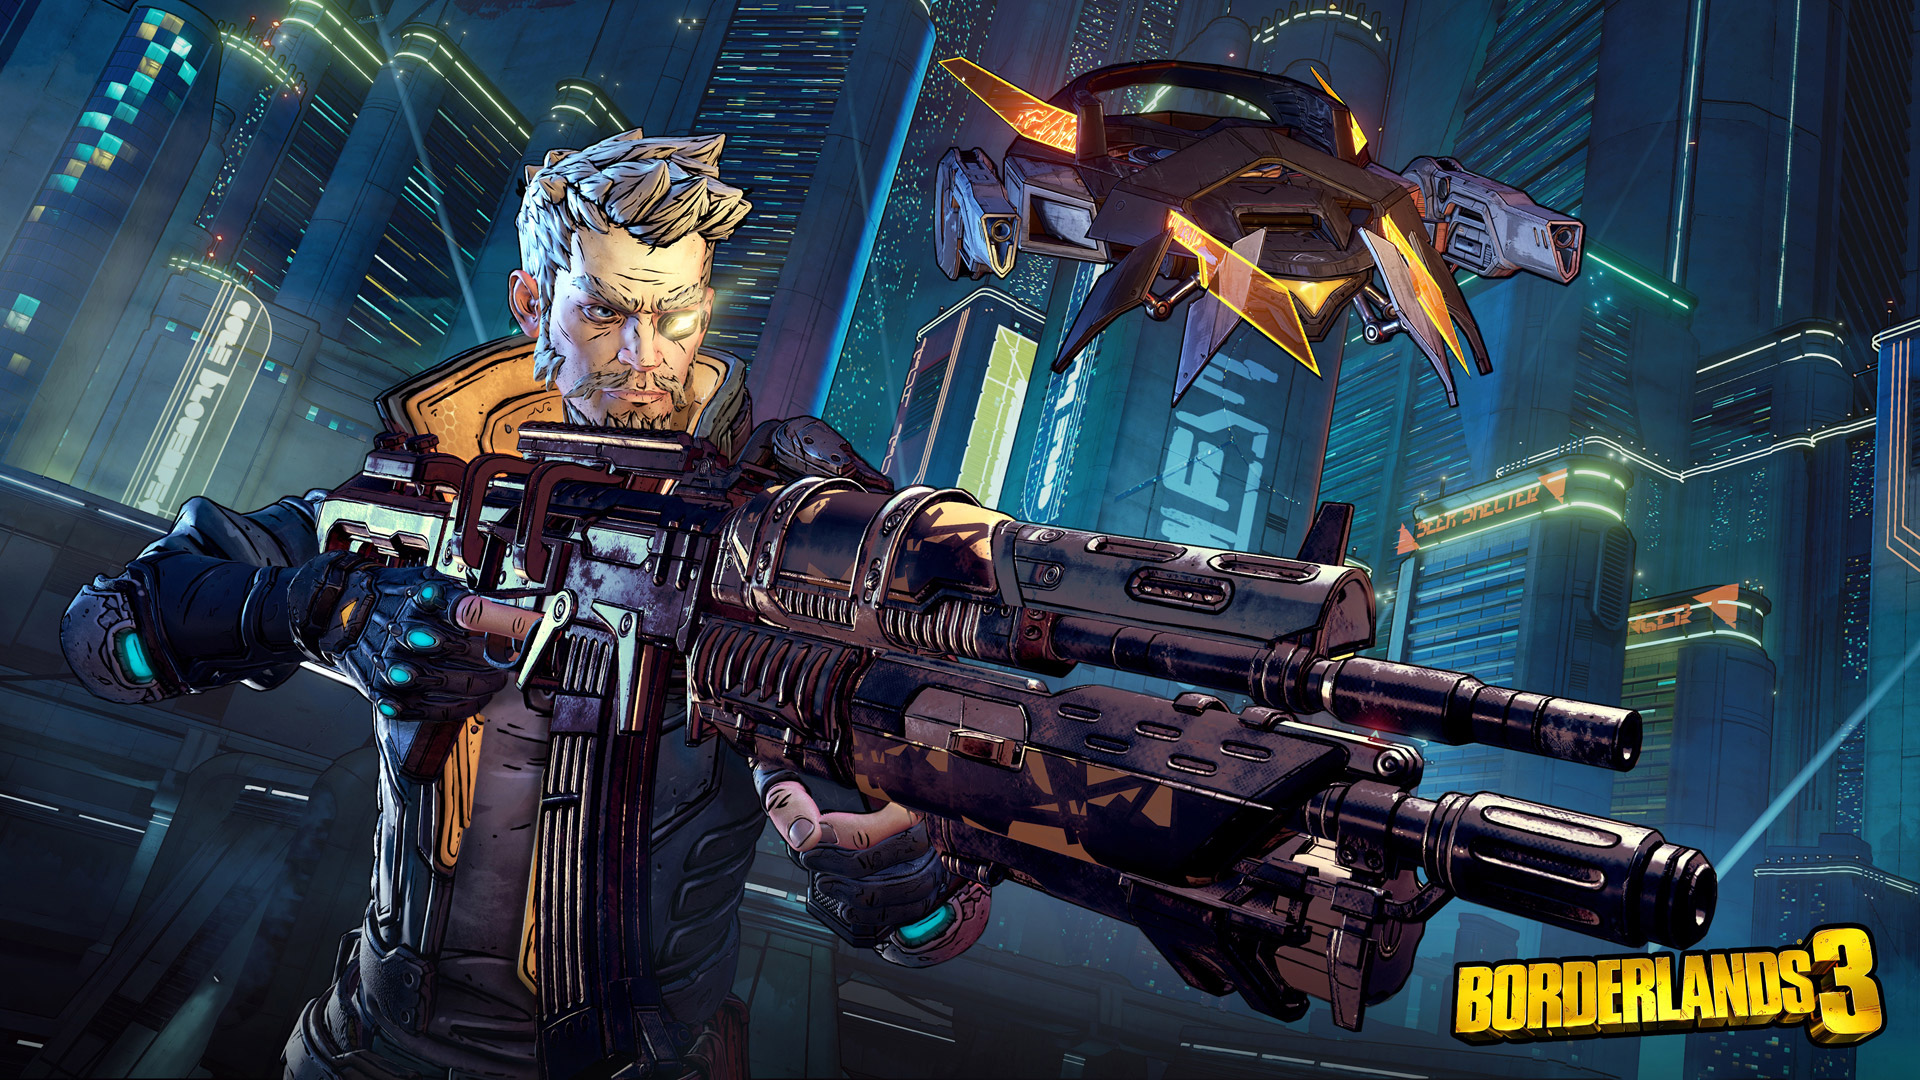 Download Borderlands 3 Wallpaper 1920X1080  Wallpapers